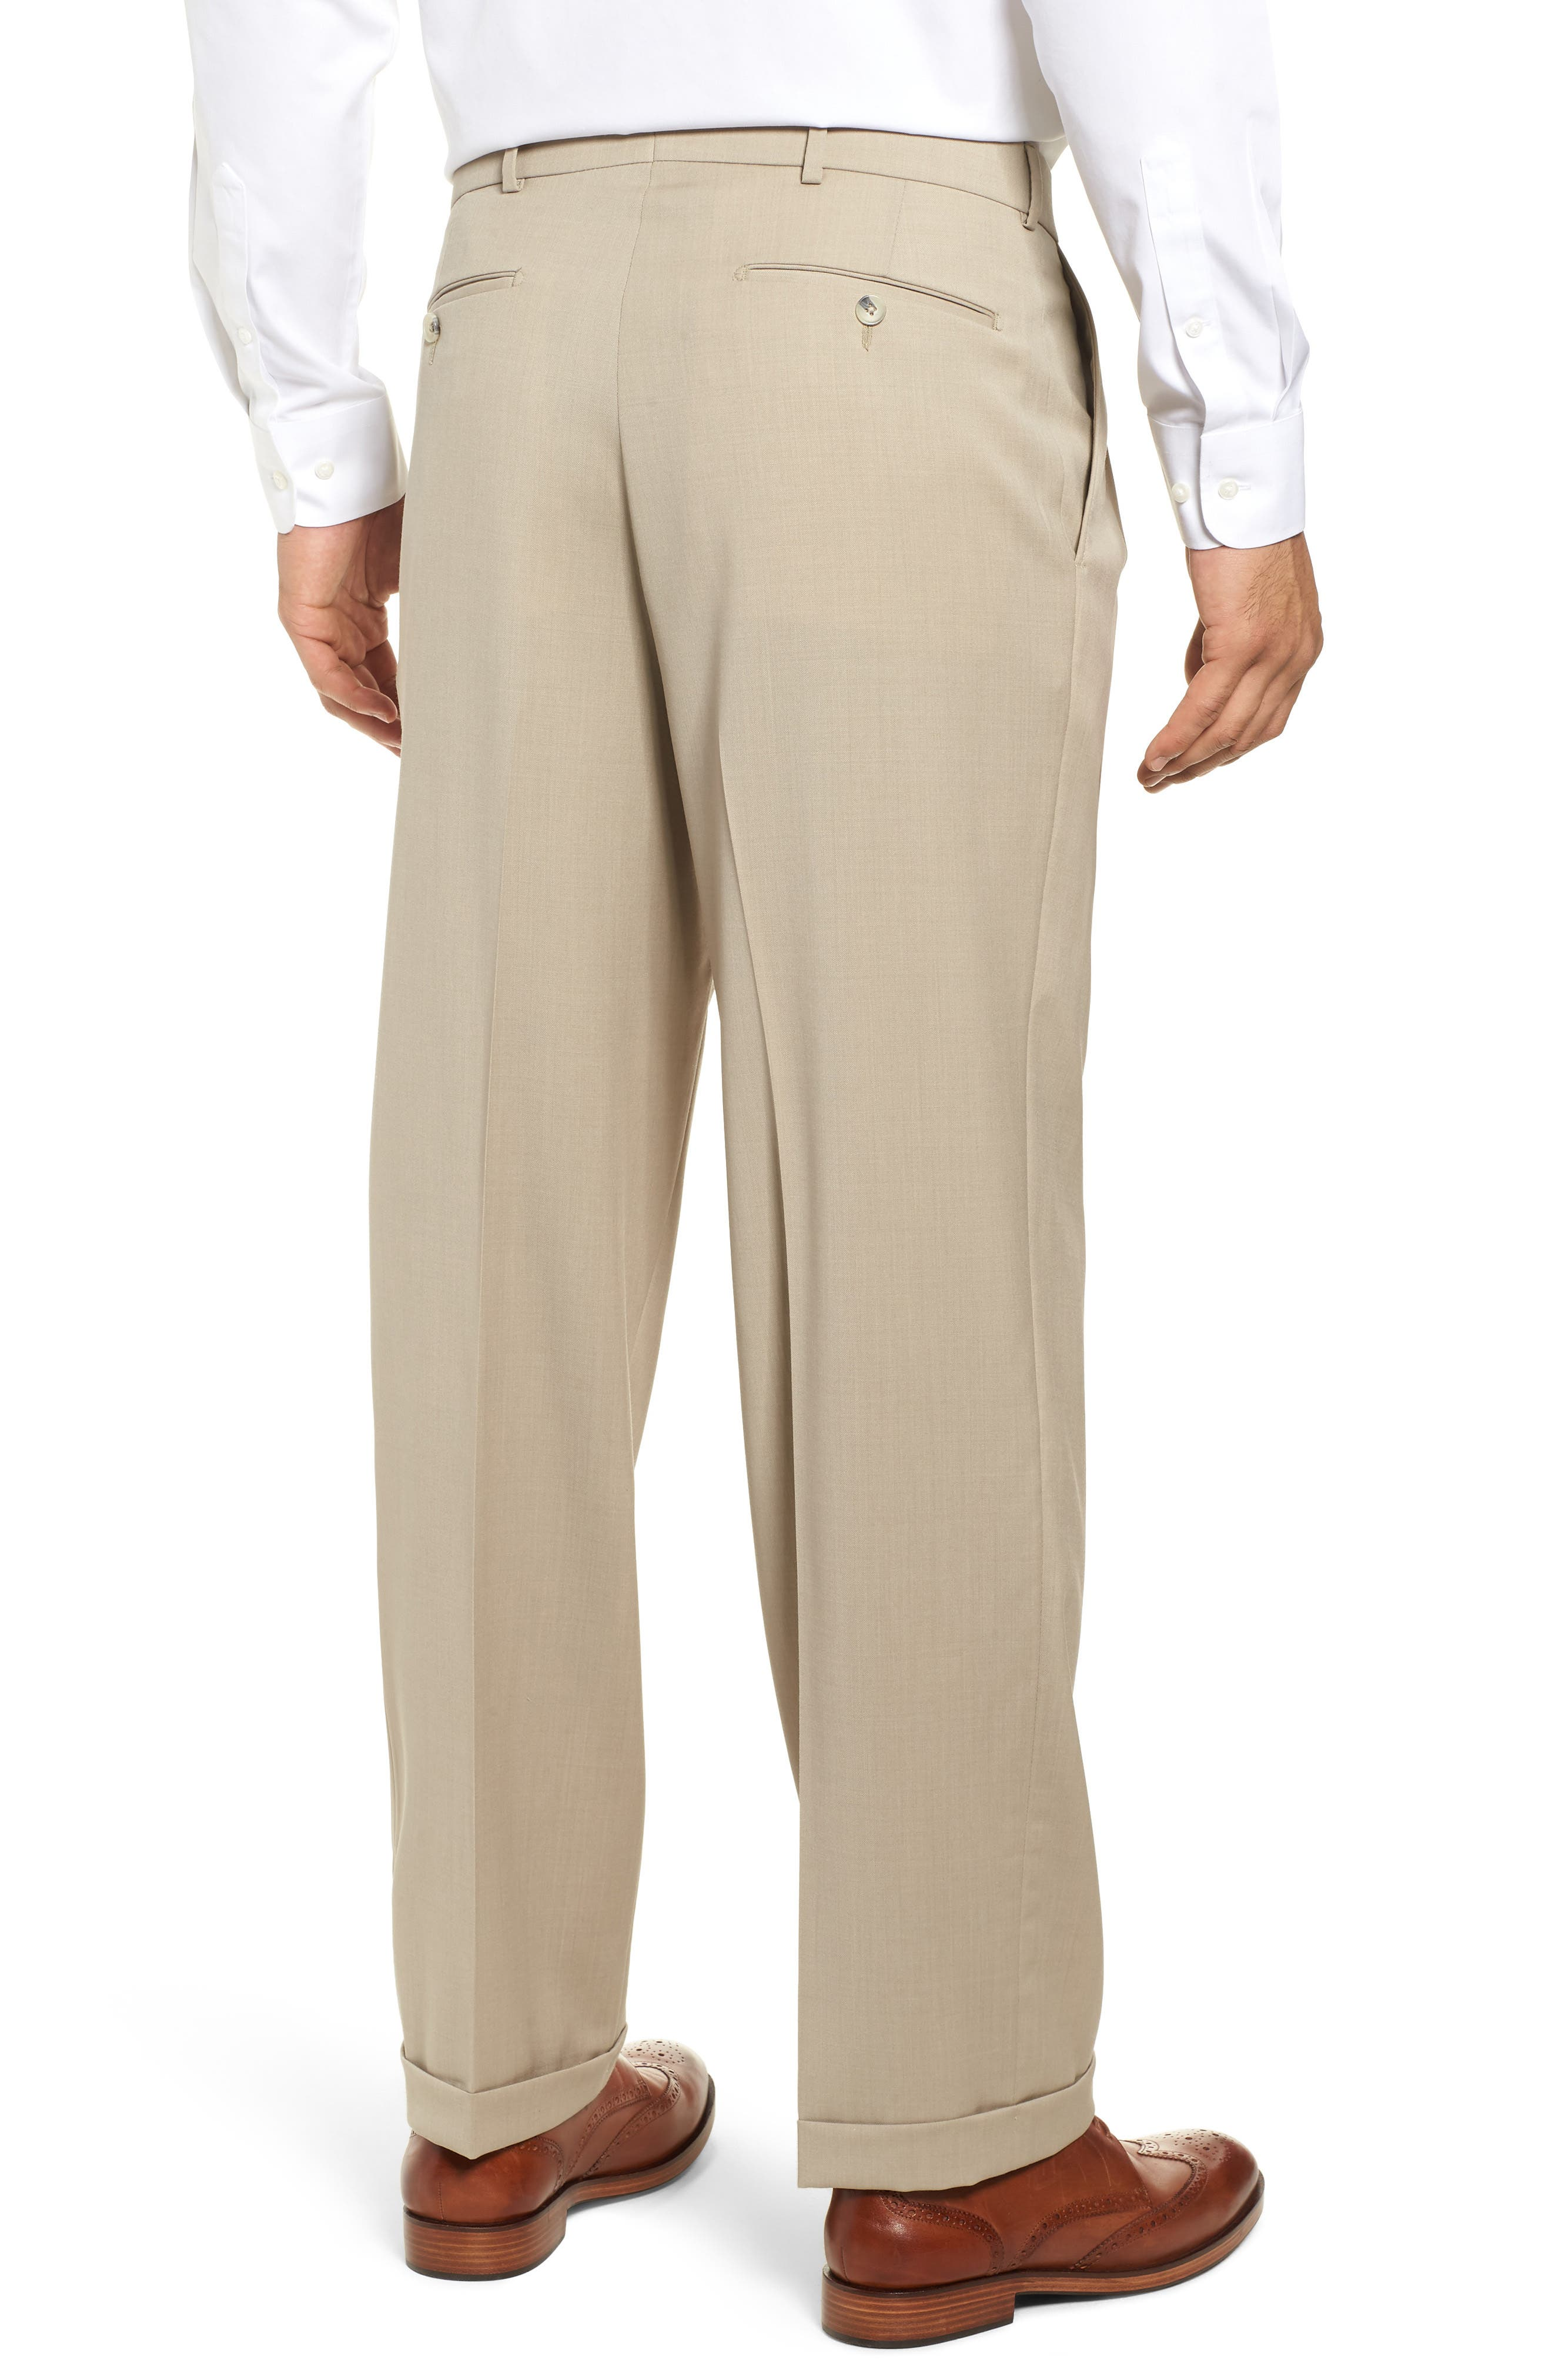 3c30f17585d78a Men's Pleated Big & Tall Pants & Chinos | Nordstrom